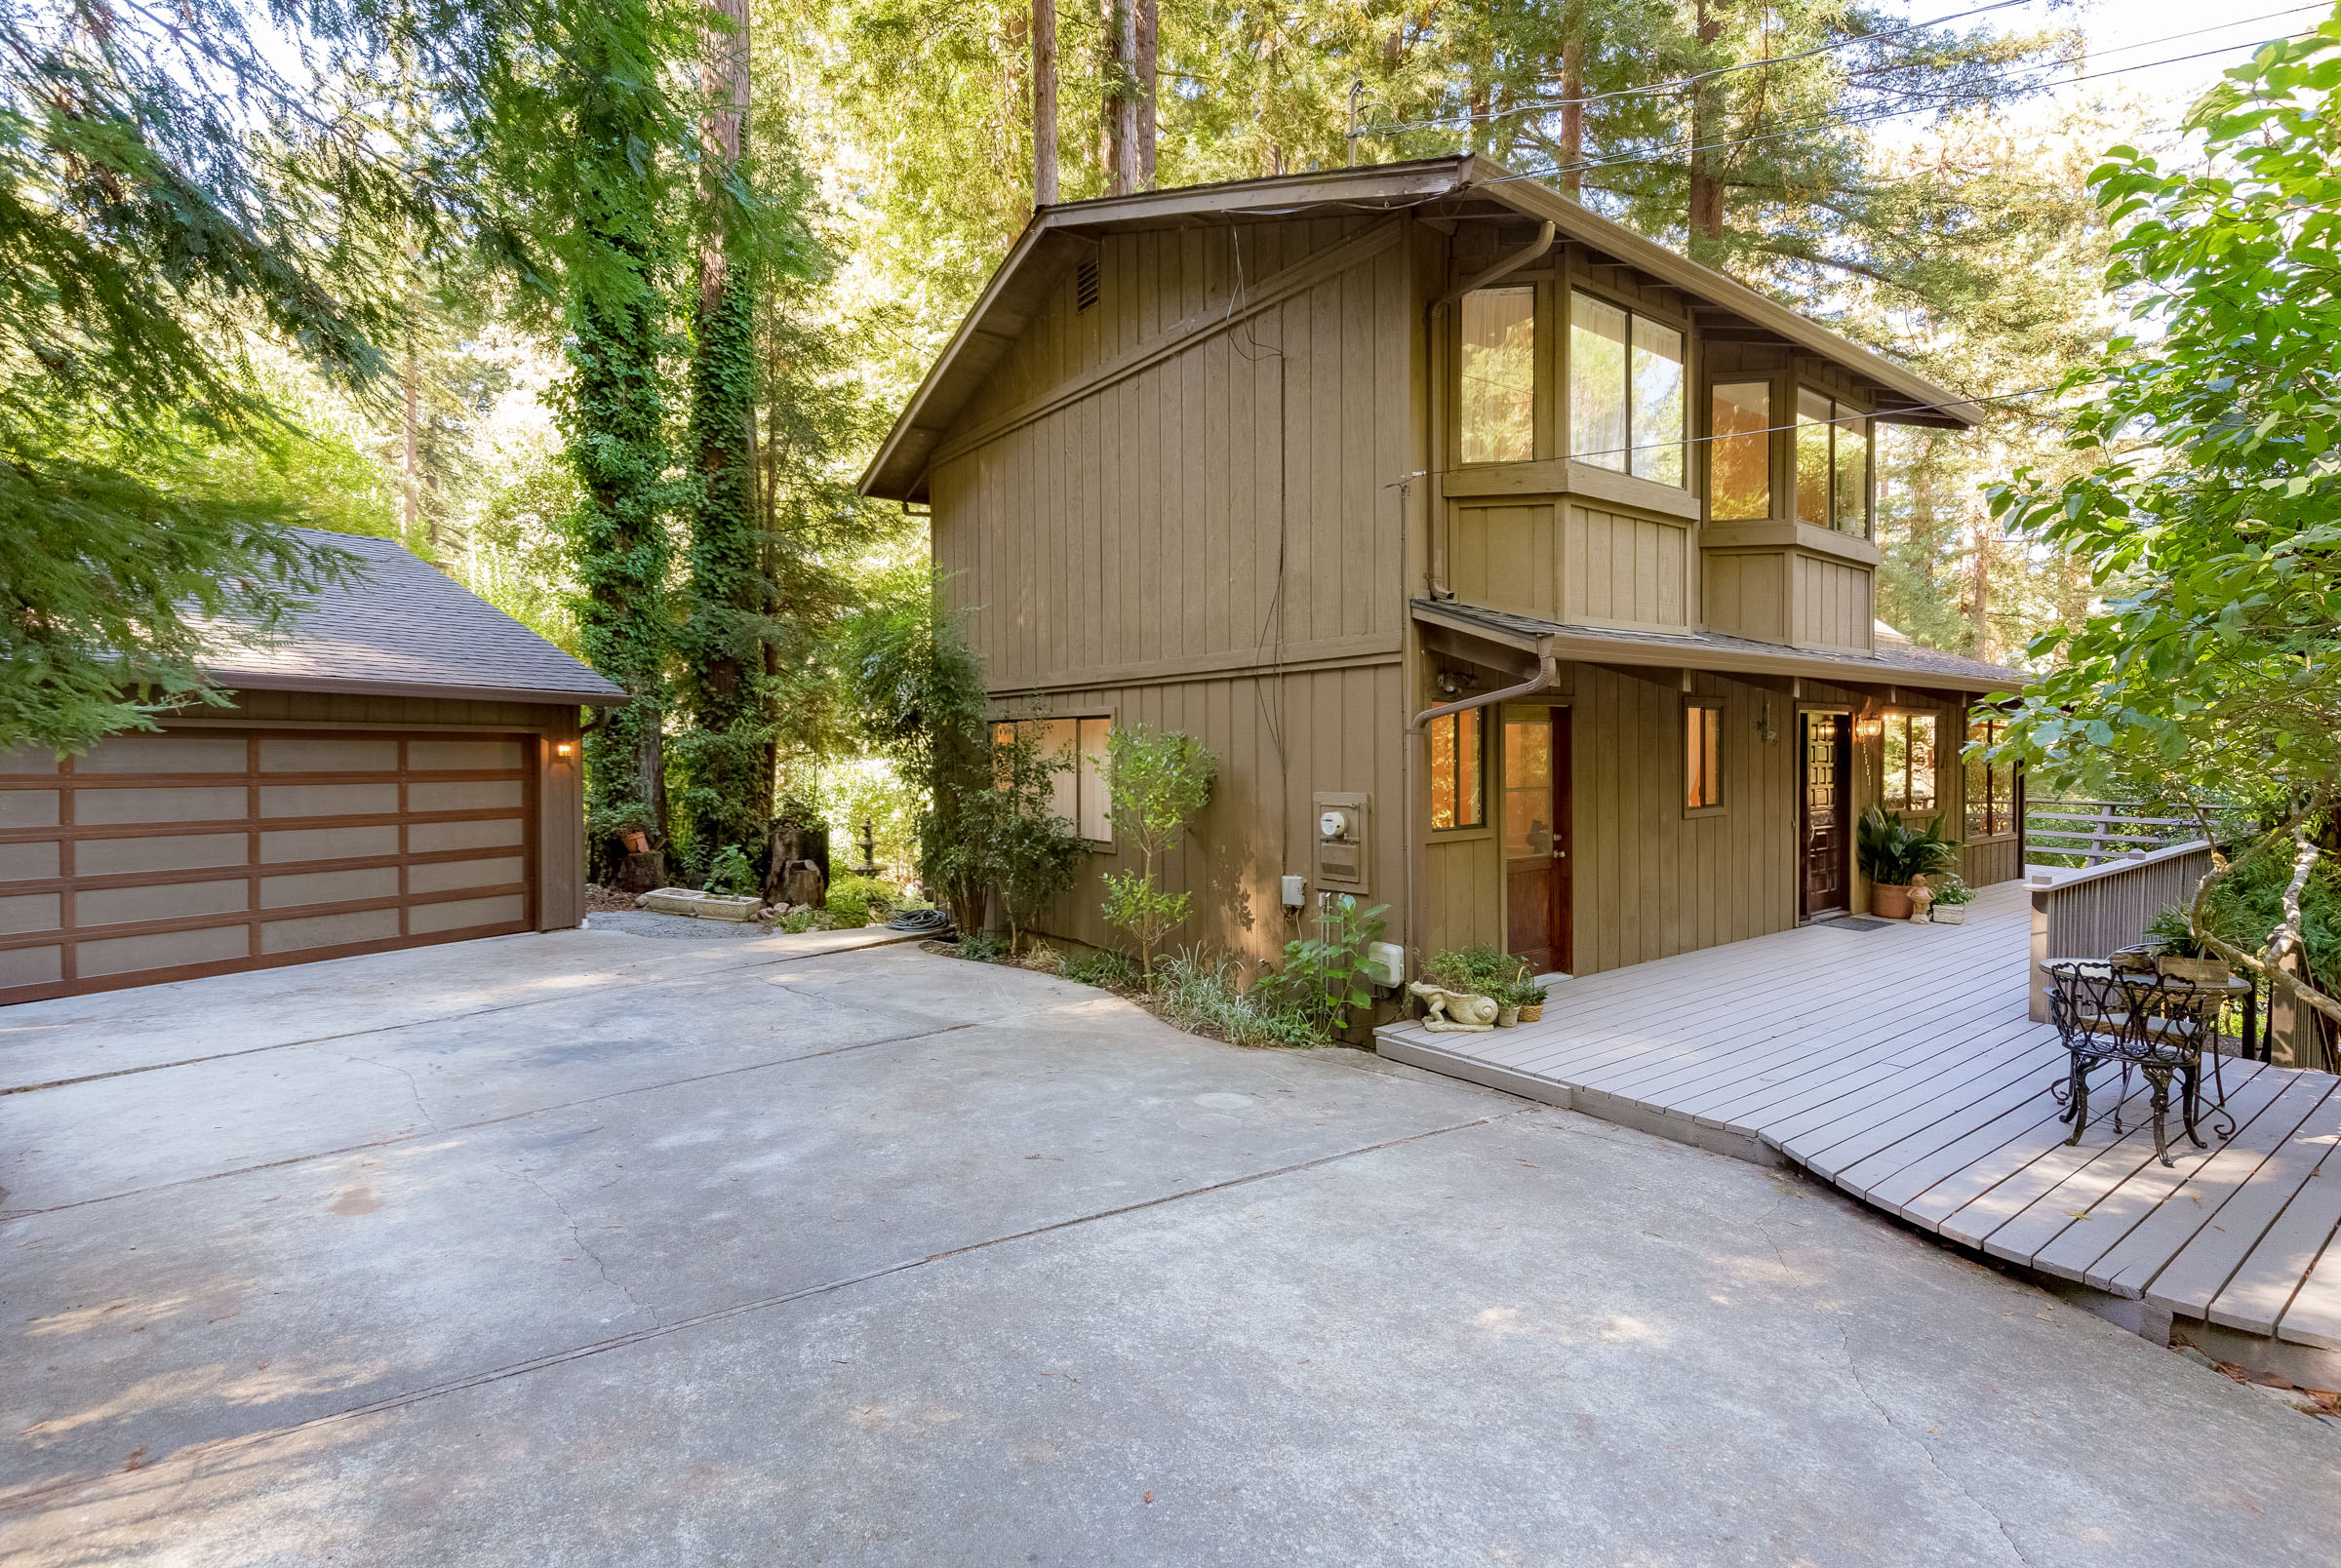 Large Driveway with Garage and Workshop